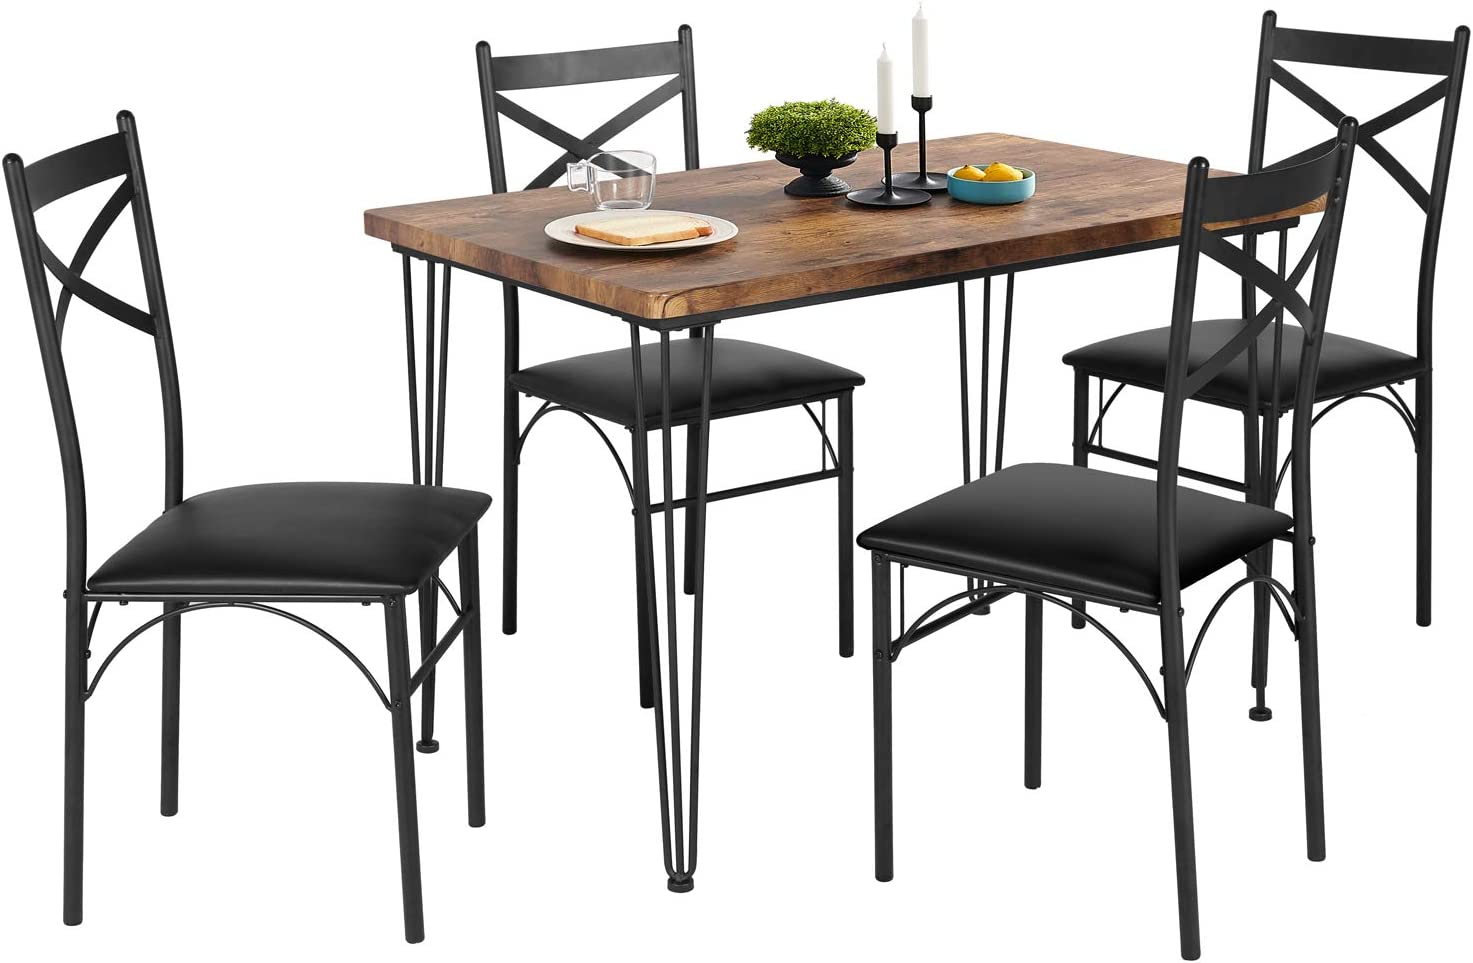 VECELO Rustic Country Set Wooden Table and 4 Chairs with Metal Legs for Breakfast Nook, Kitchen, Dining Room-4 Placemats Included, Black